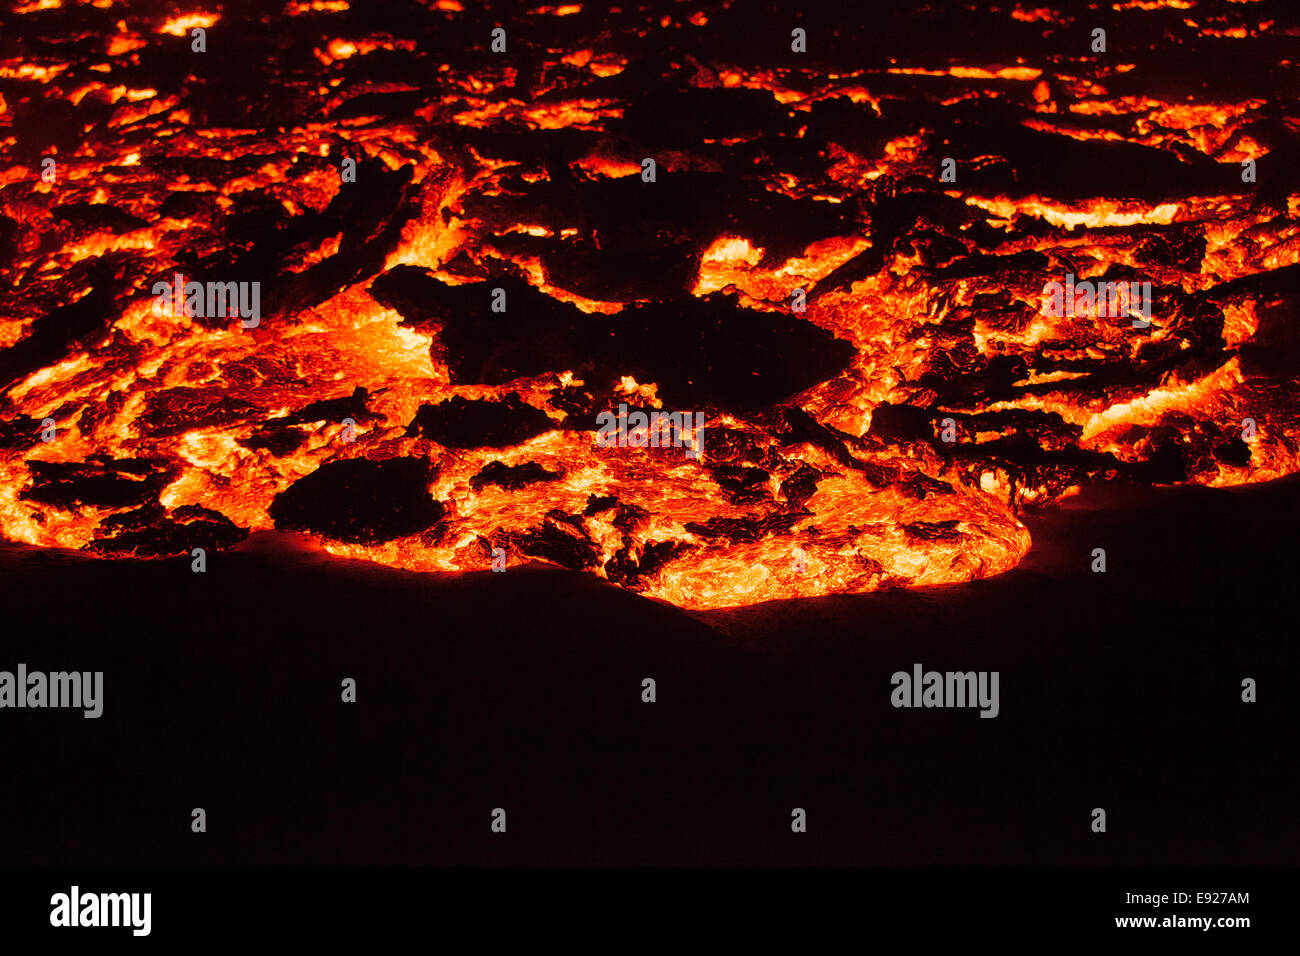 lava creep - Stock Image